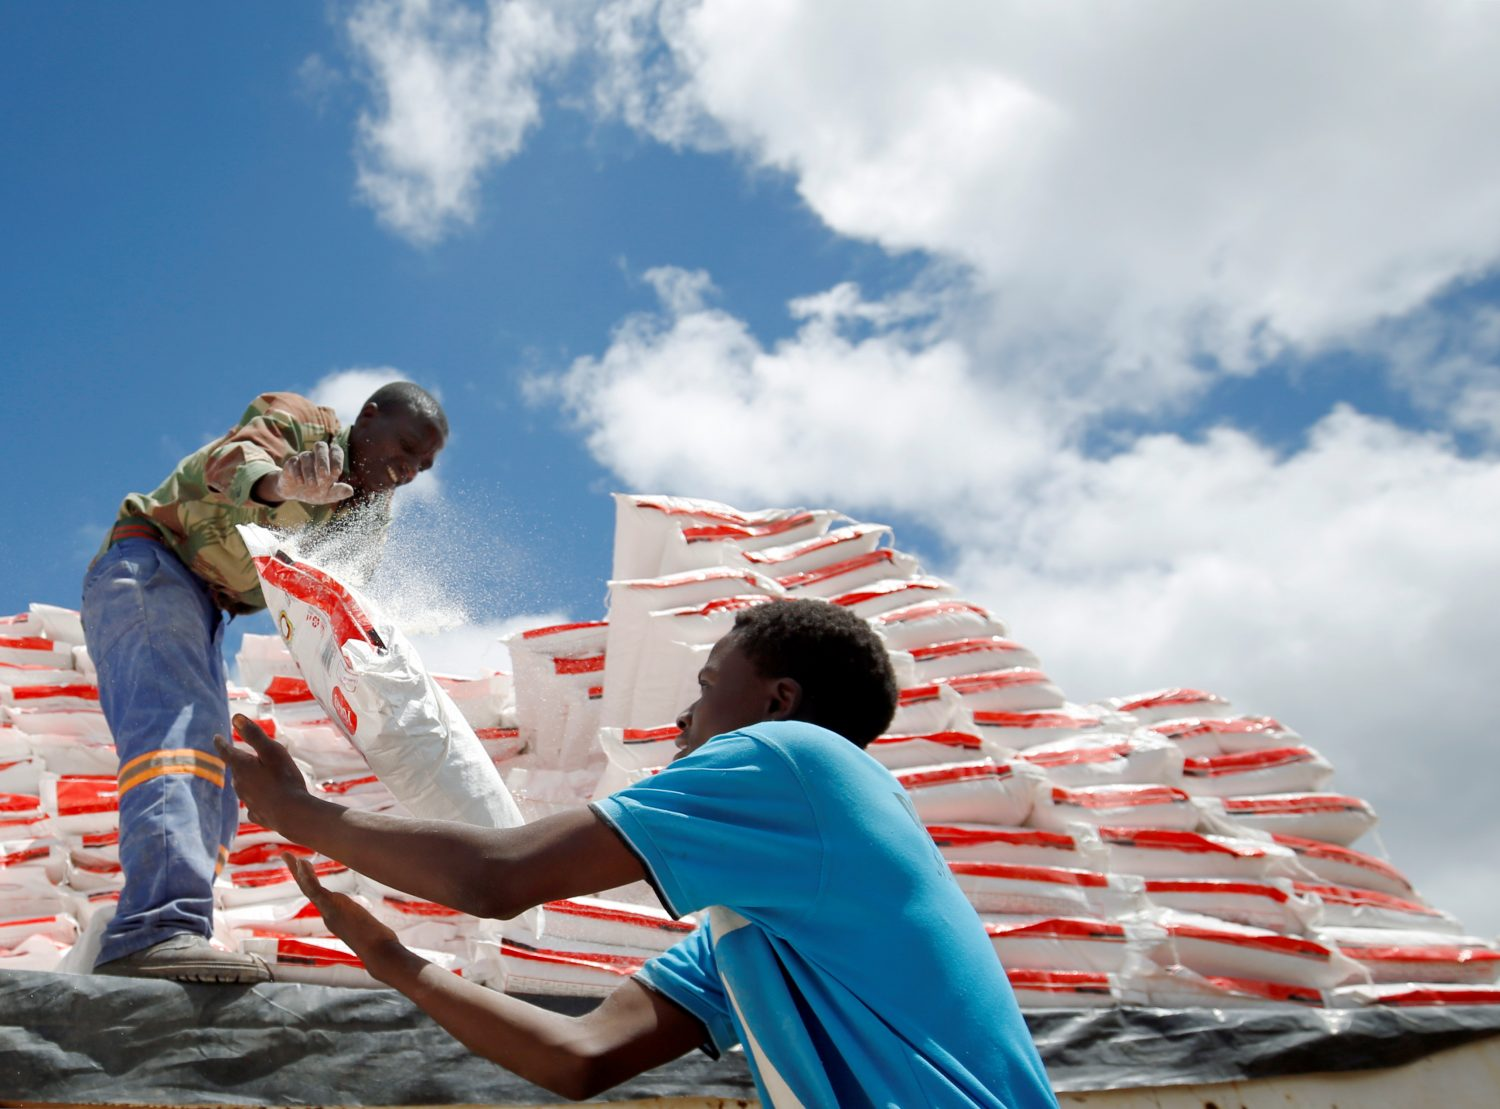 Aid workers offload maize meal for victims of Cyclone Idai at Siverstream Estates in Chipinge, Zimbabwe, March 24, 2019. REUTERS/Philimon Bulawayo